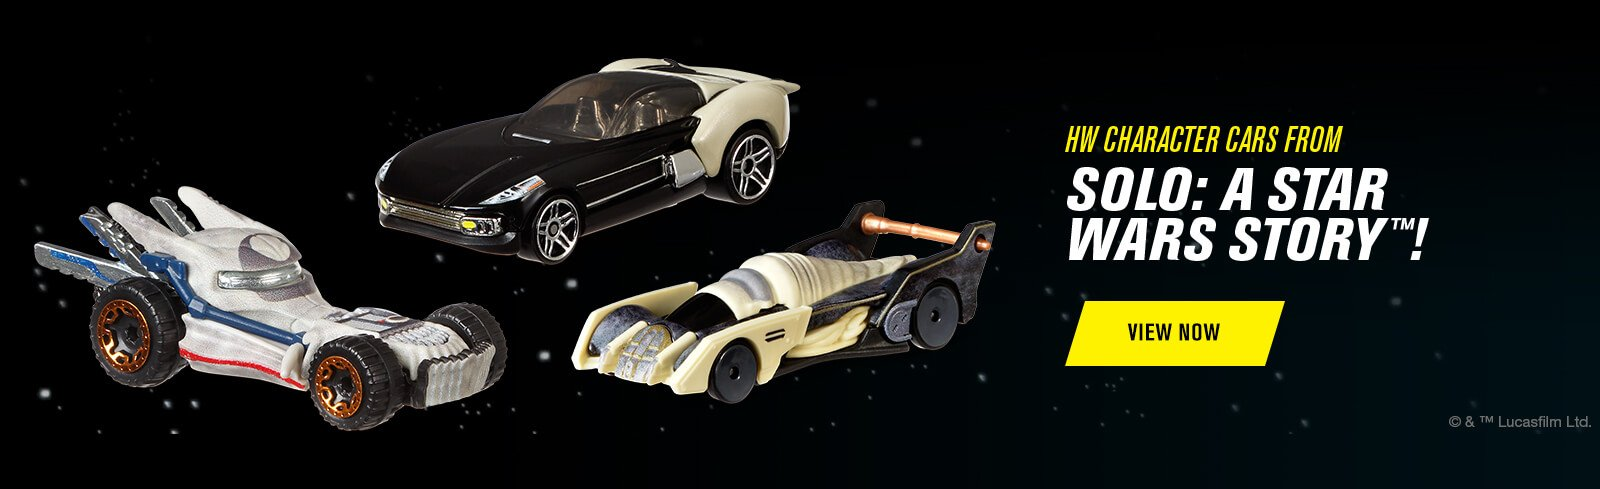 HW Character Cars From Solo: A Star Wars Story!